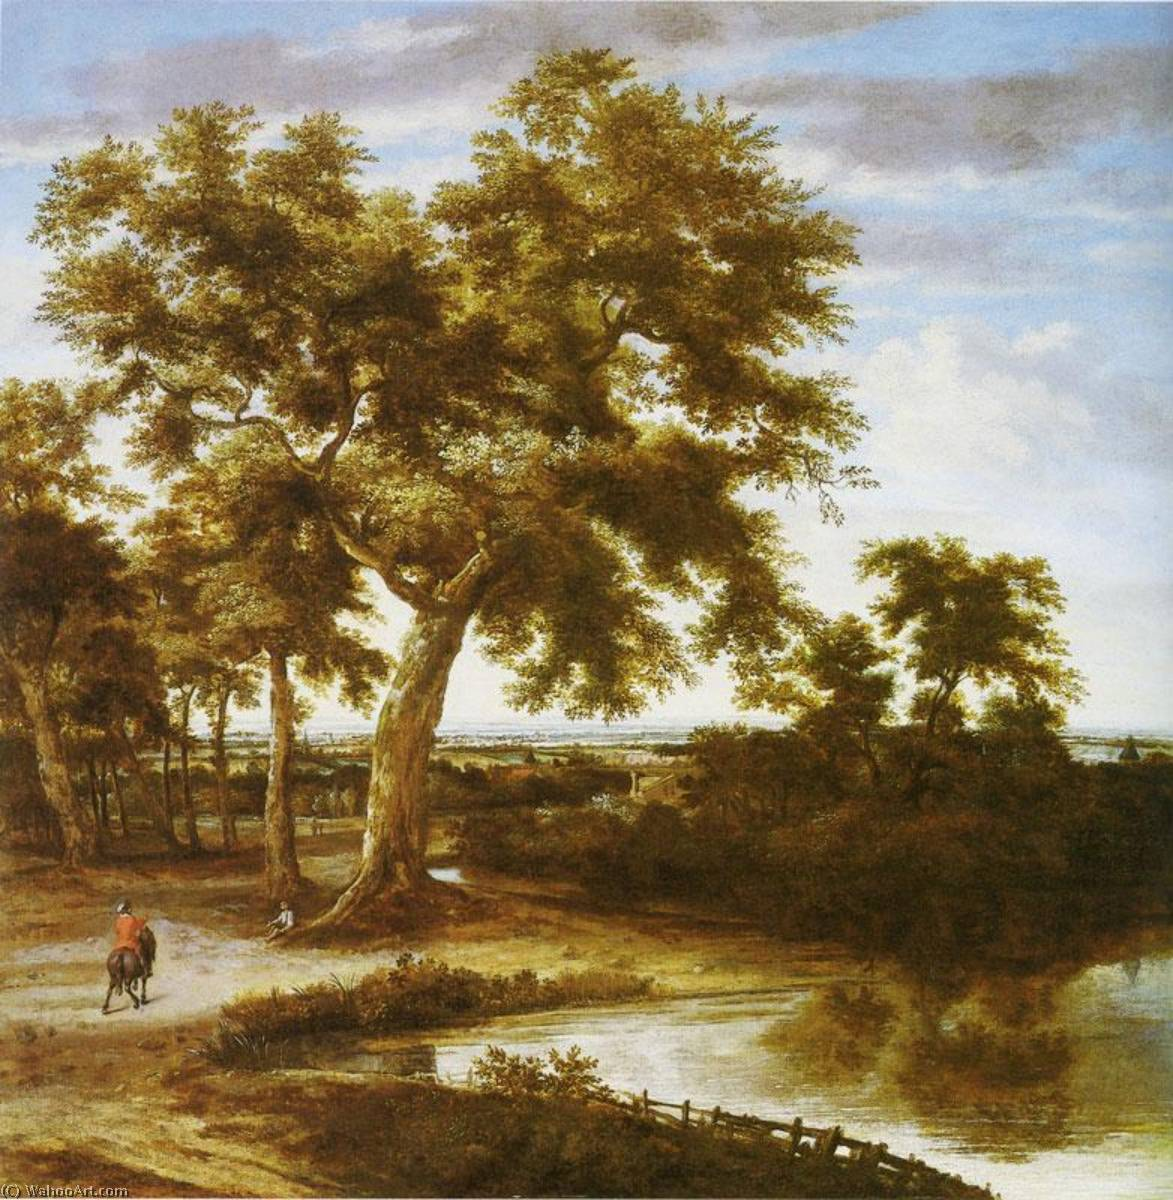 Landscape with a large Tree by Philips De Koninck (1619-1688) | Art Reproductions Philips De Koninck | WahooArt.com